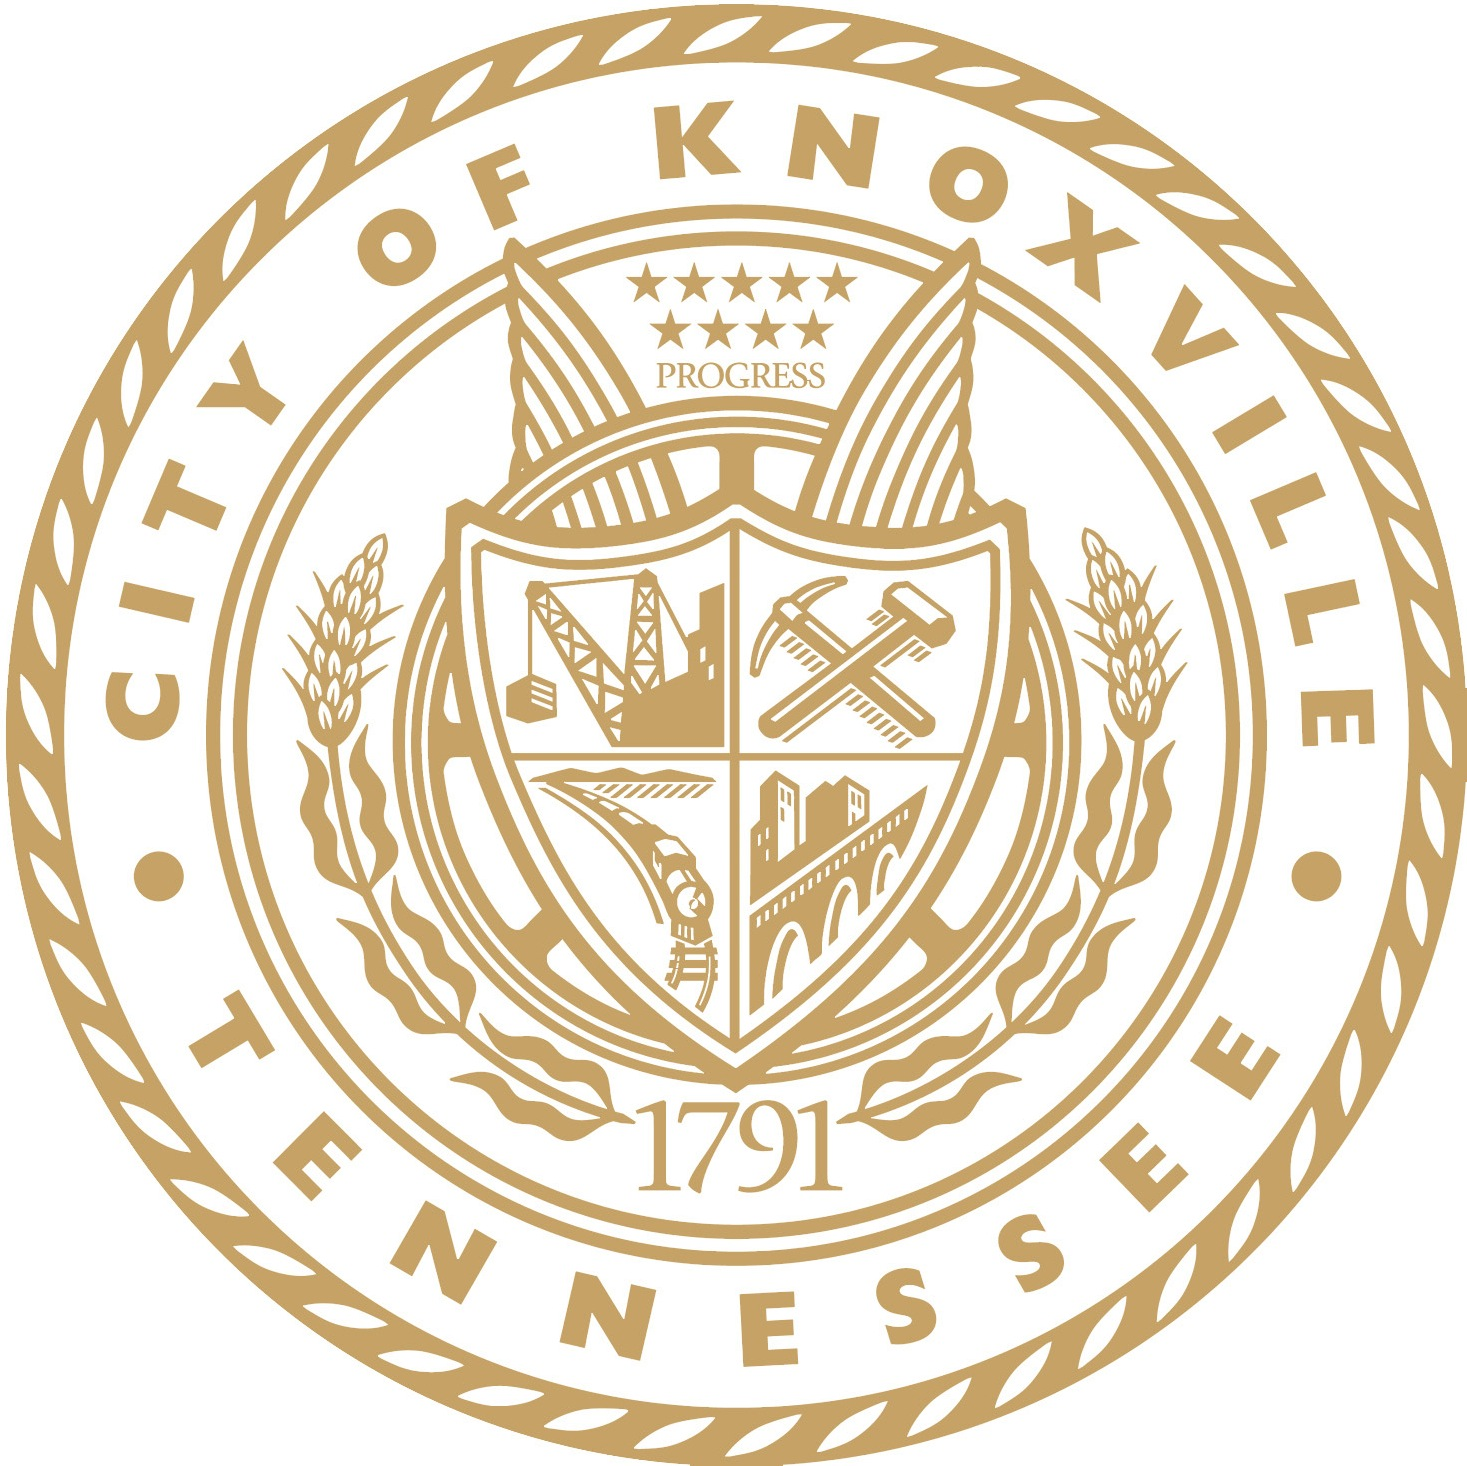 Knoxville, TN Seal